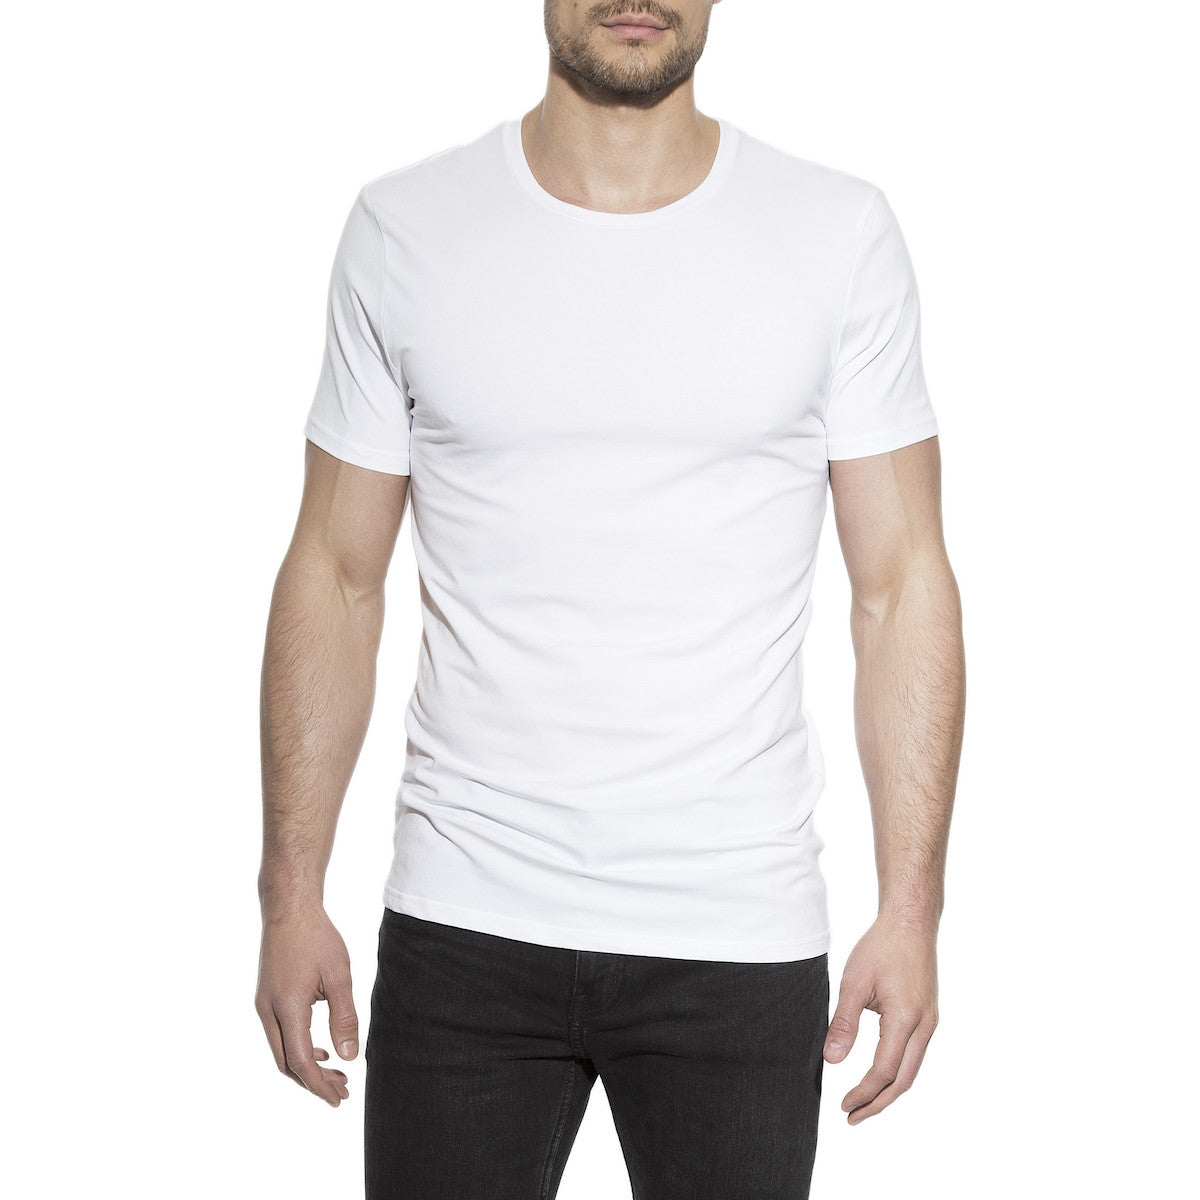 Men's Crew Neck T-Shirt 2-Pack White